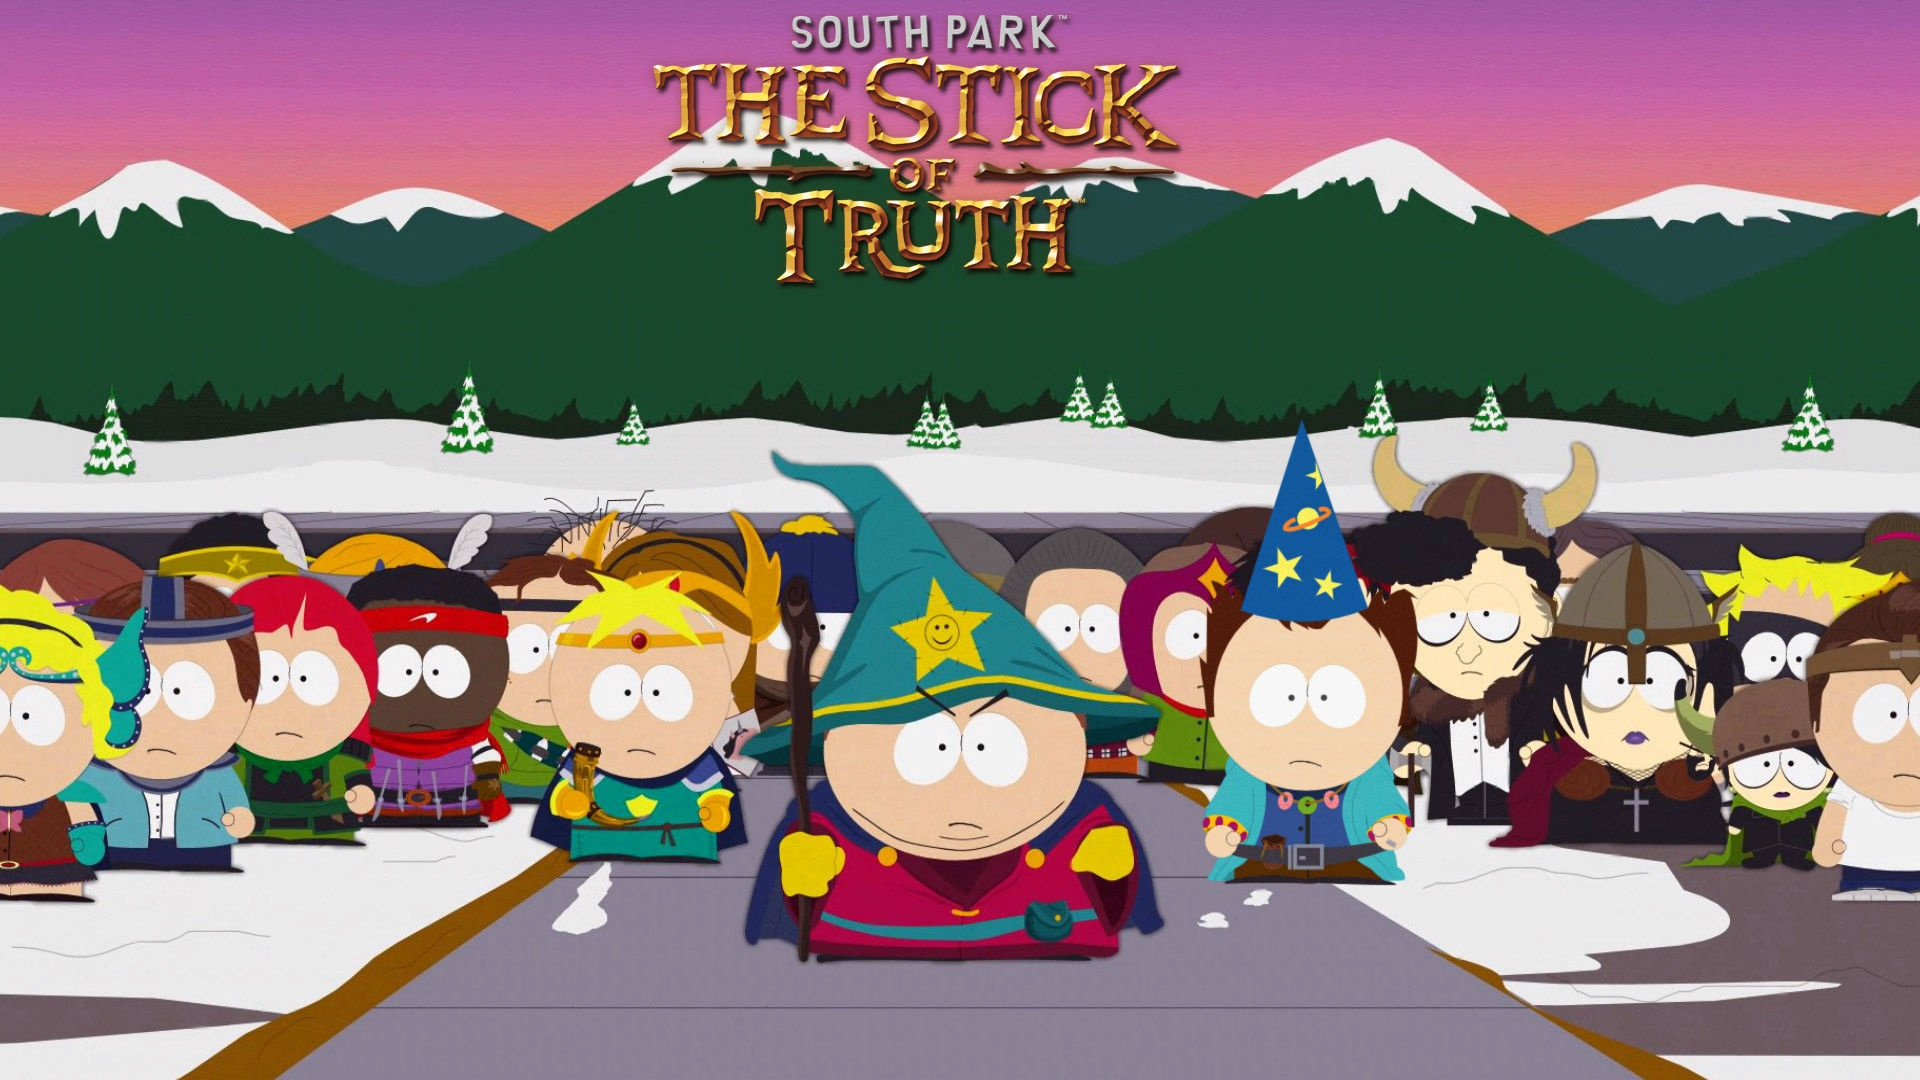 south park the stick of truth 2013 wallpapers 1920x1080